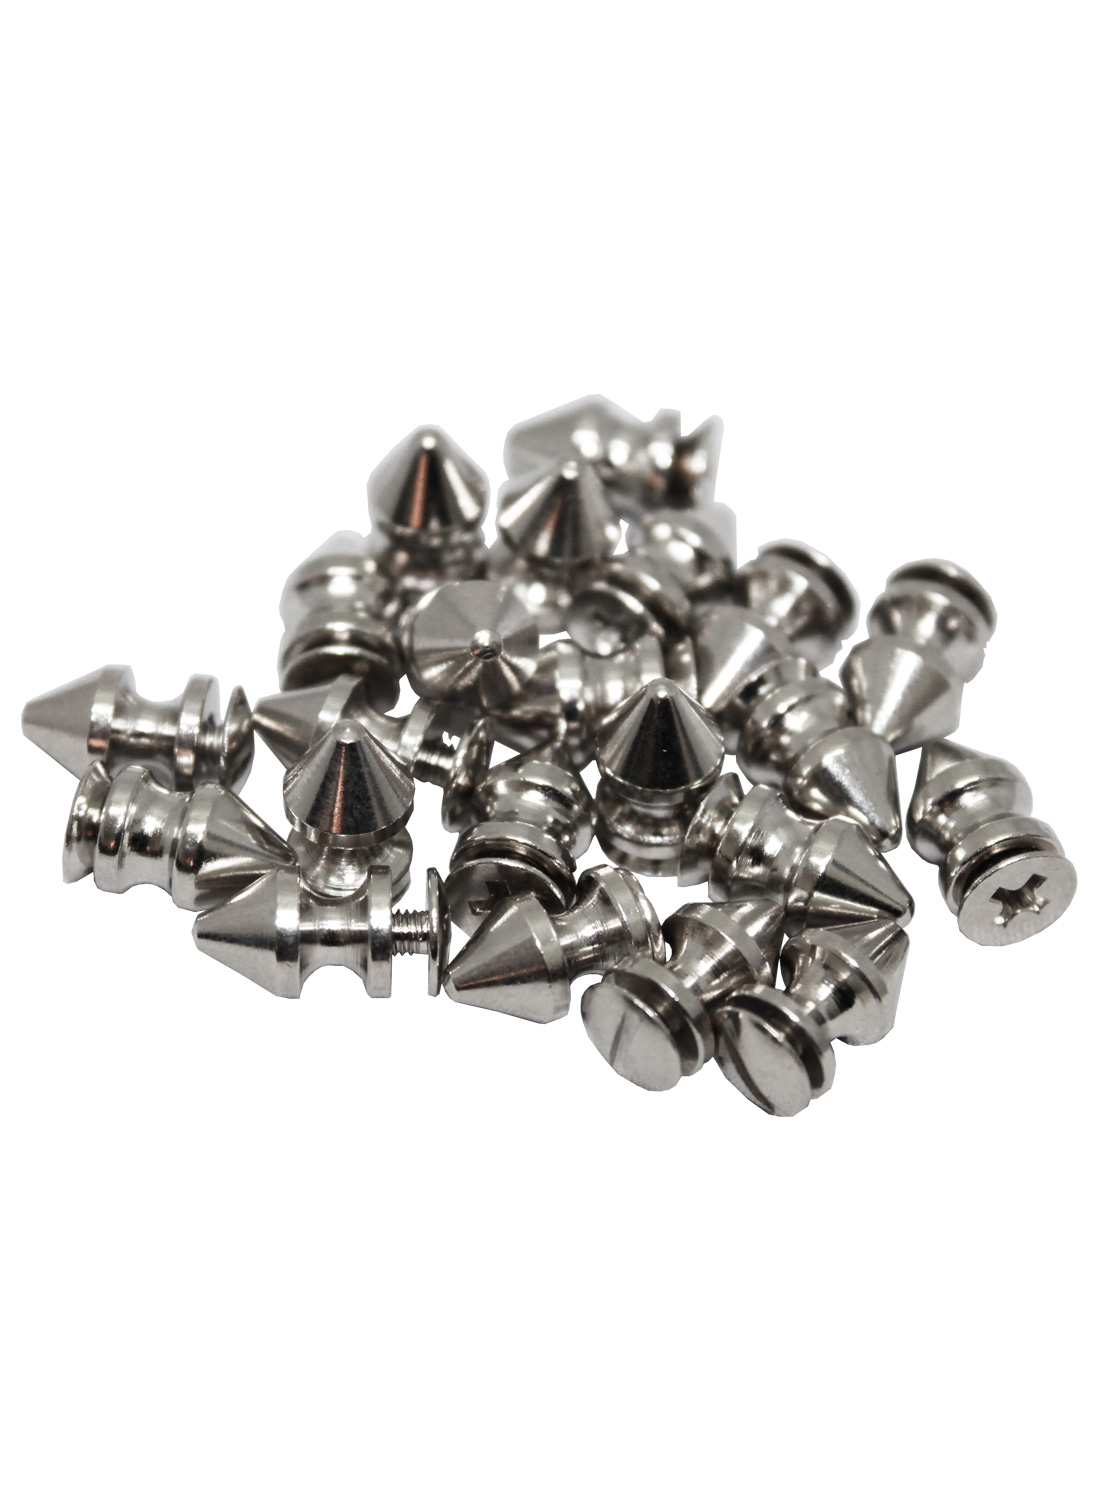 50-pack nitar spikes small